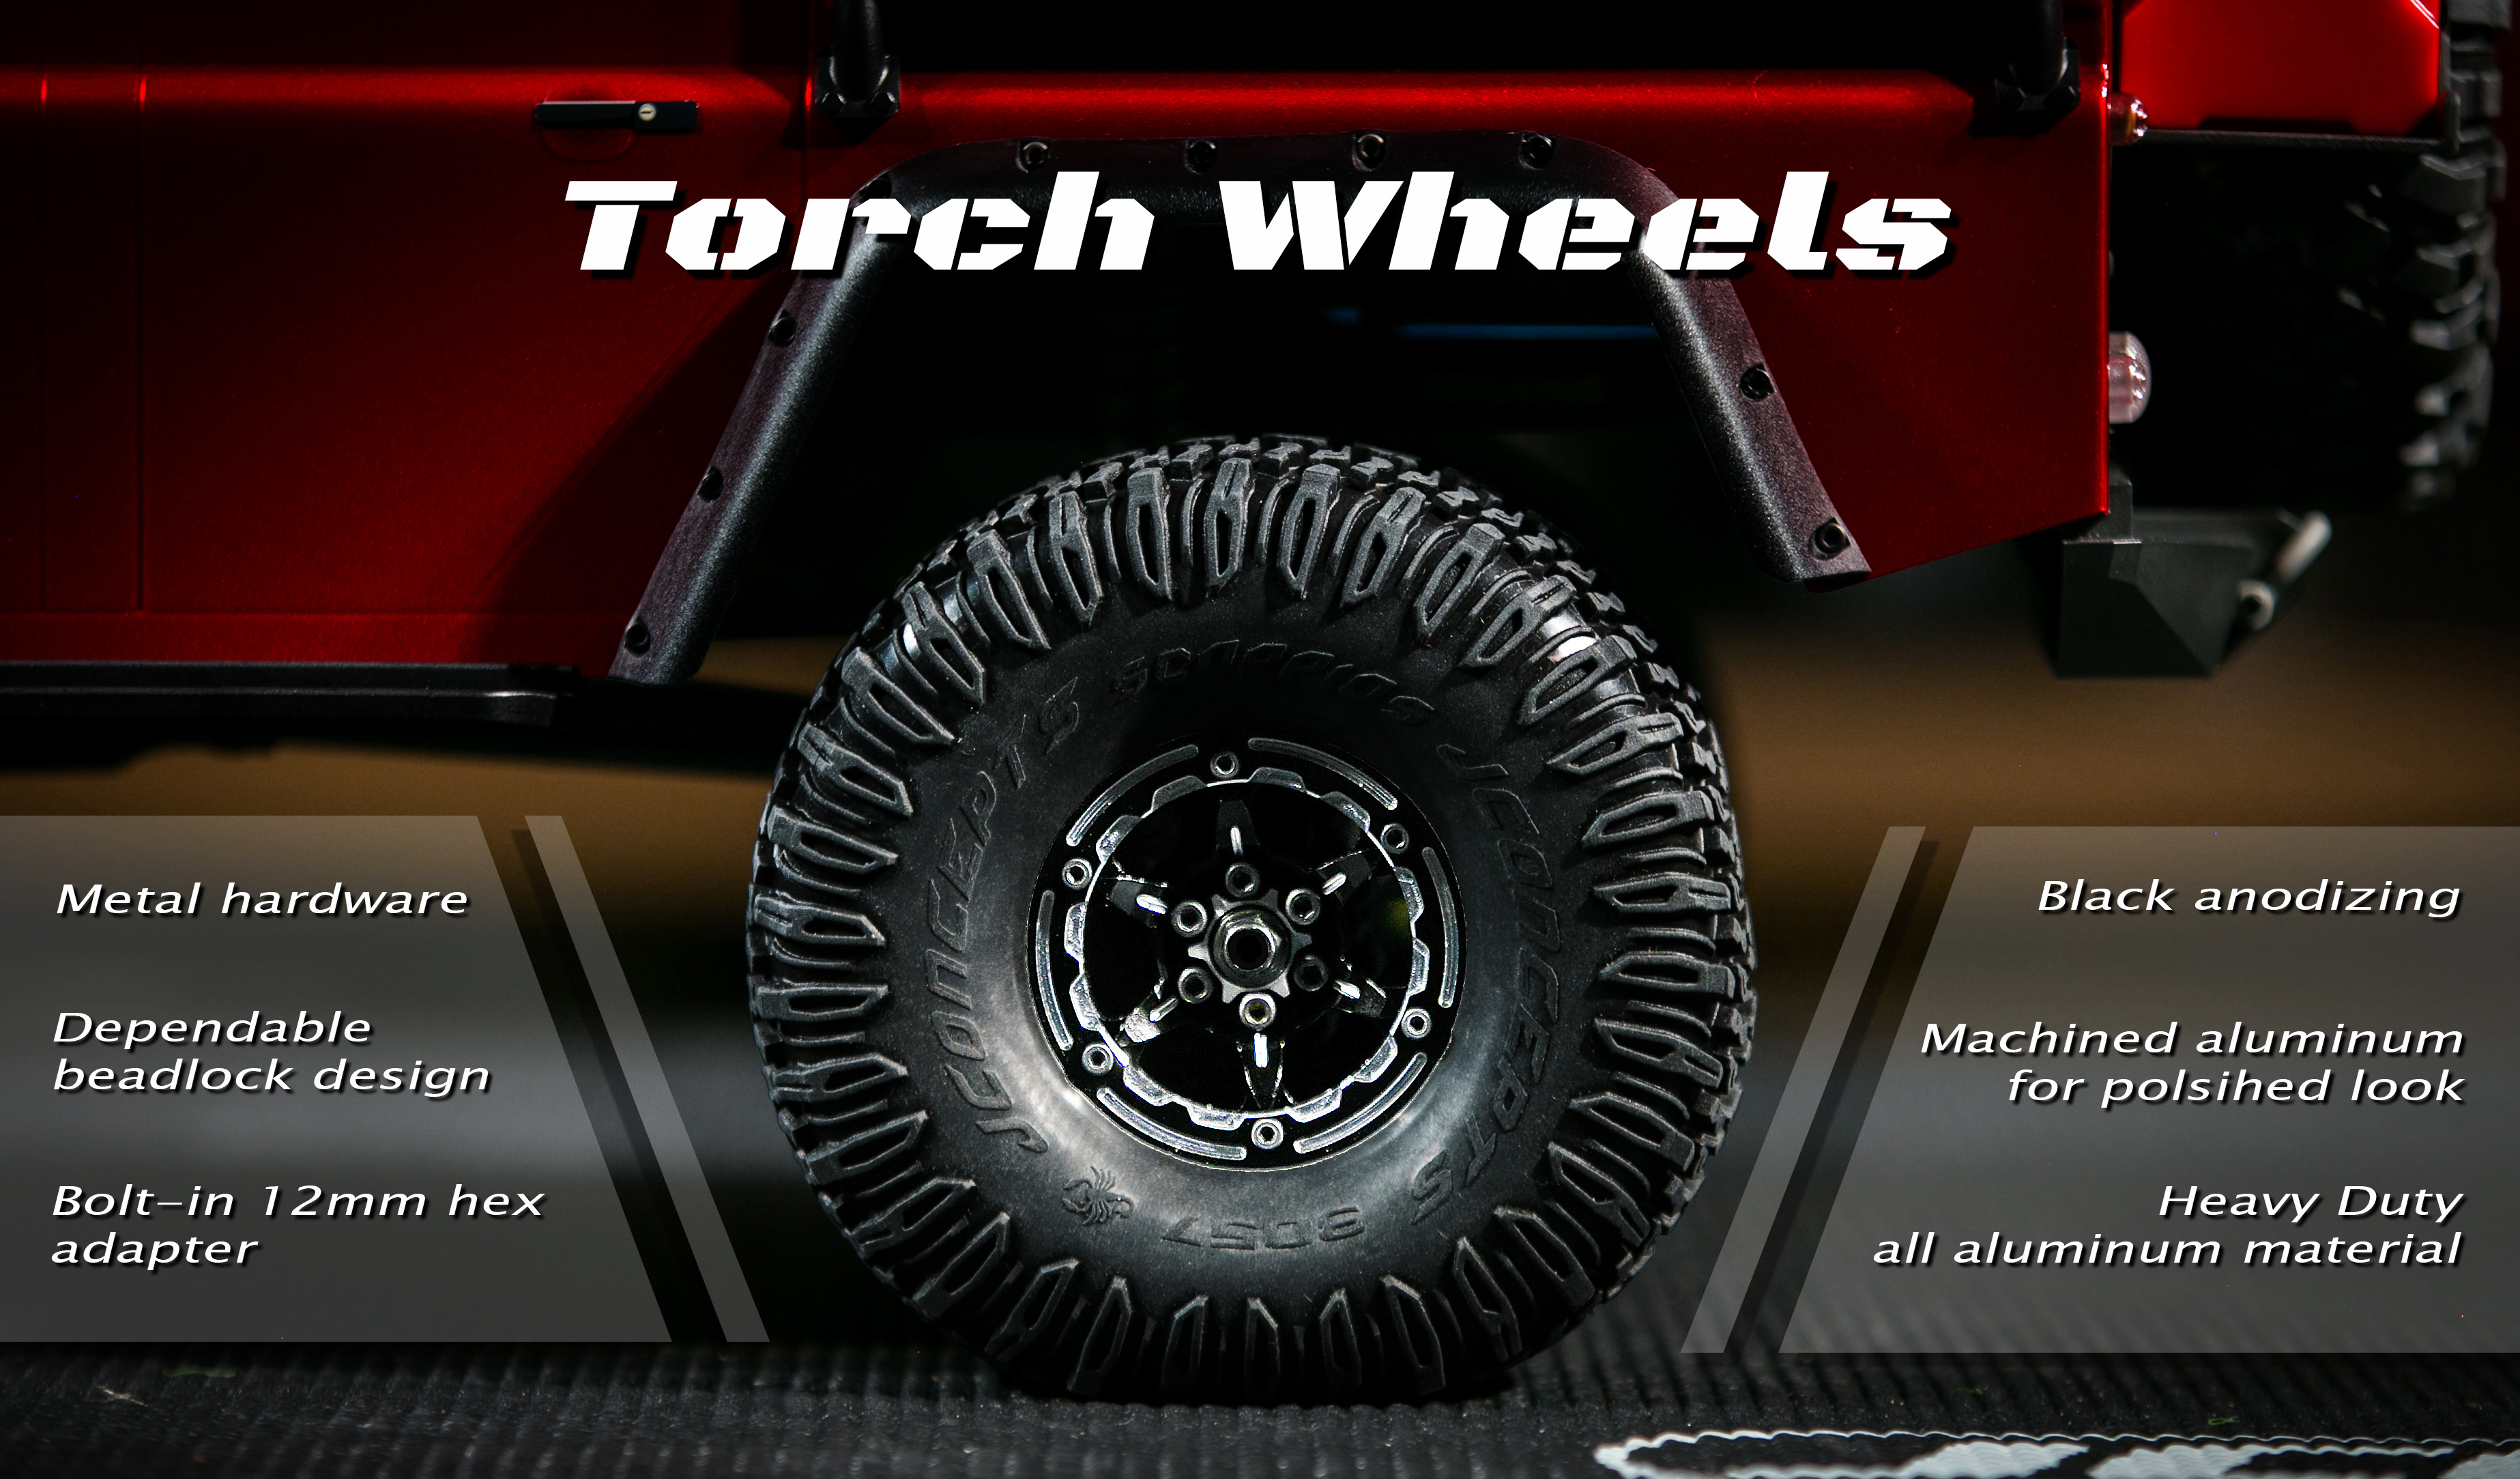 Inside Look to the JConcepts Torch Wheels for TRX4